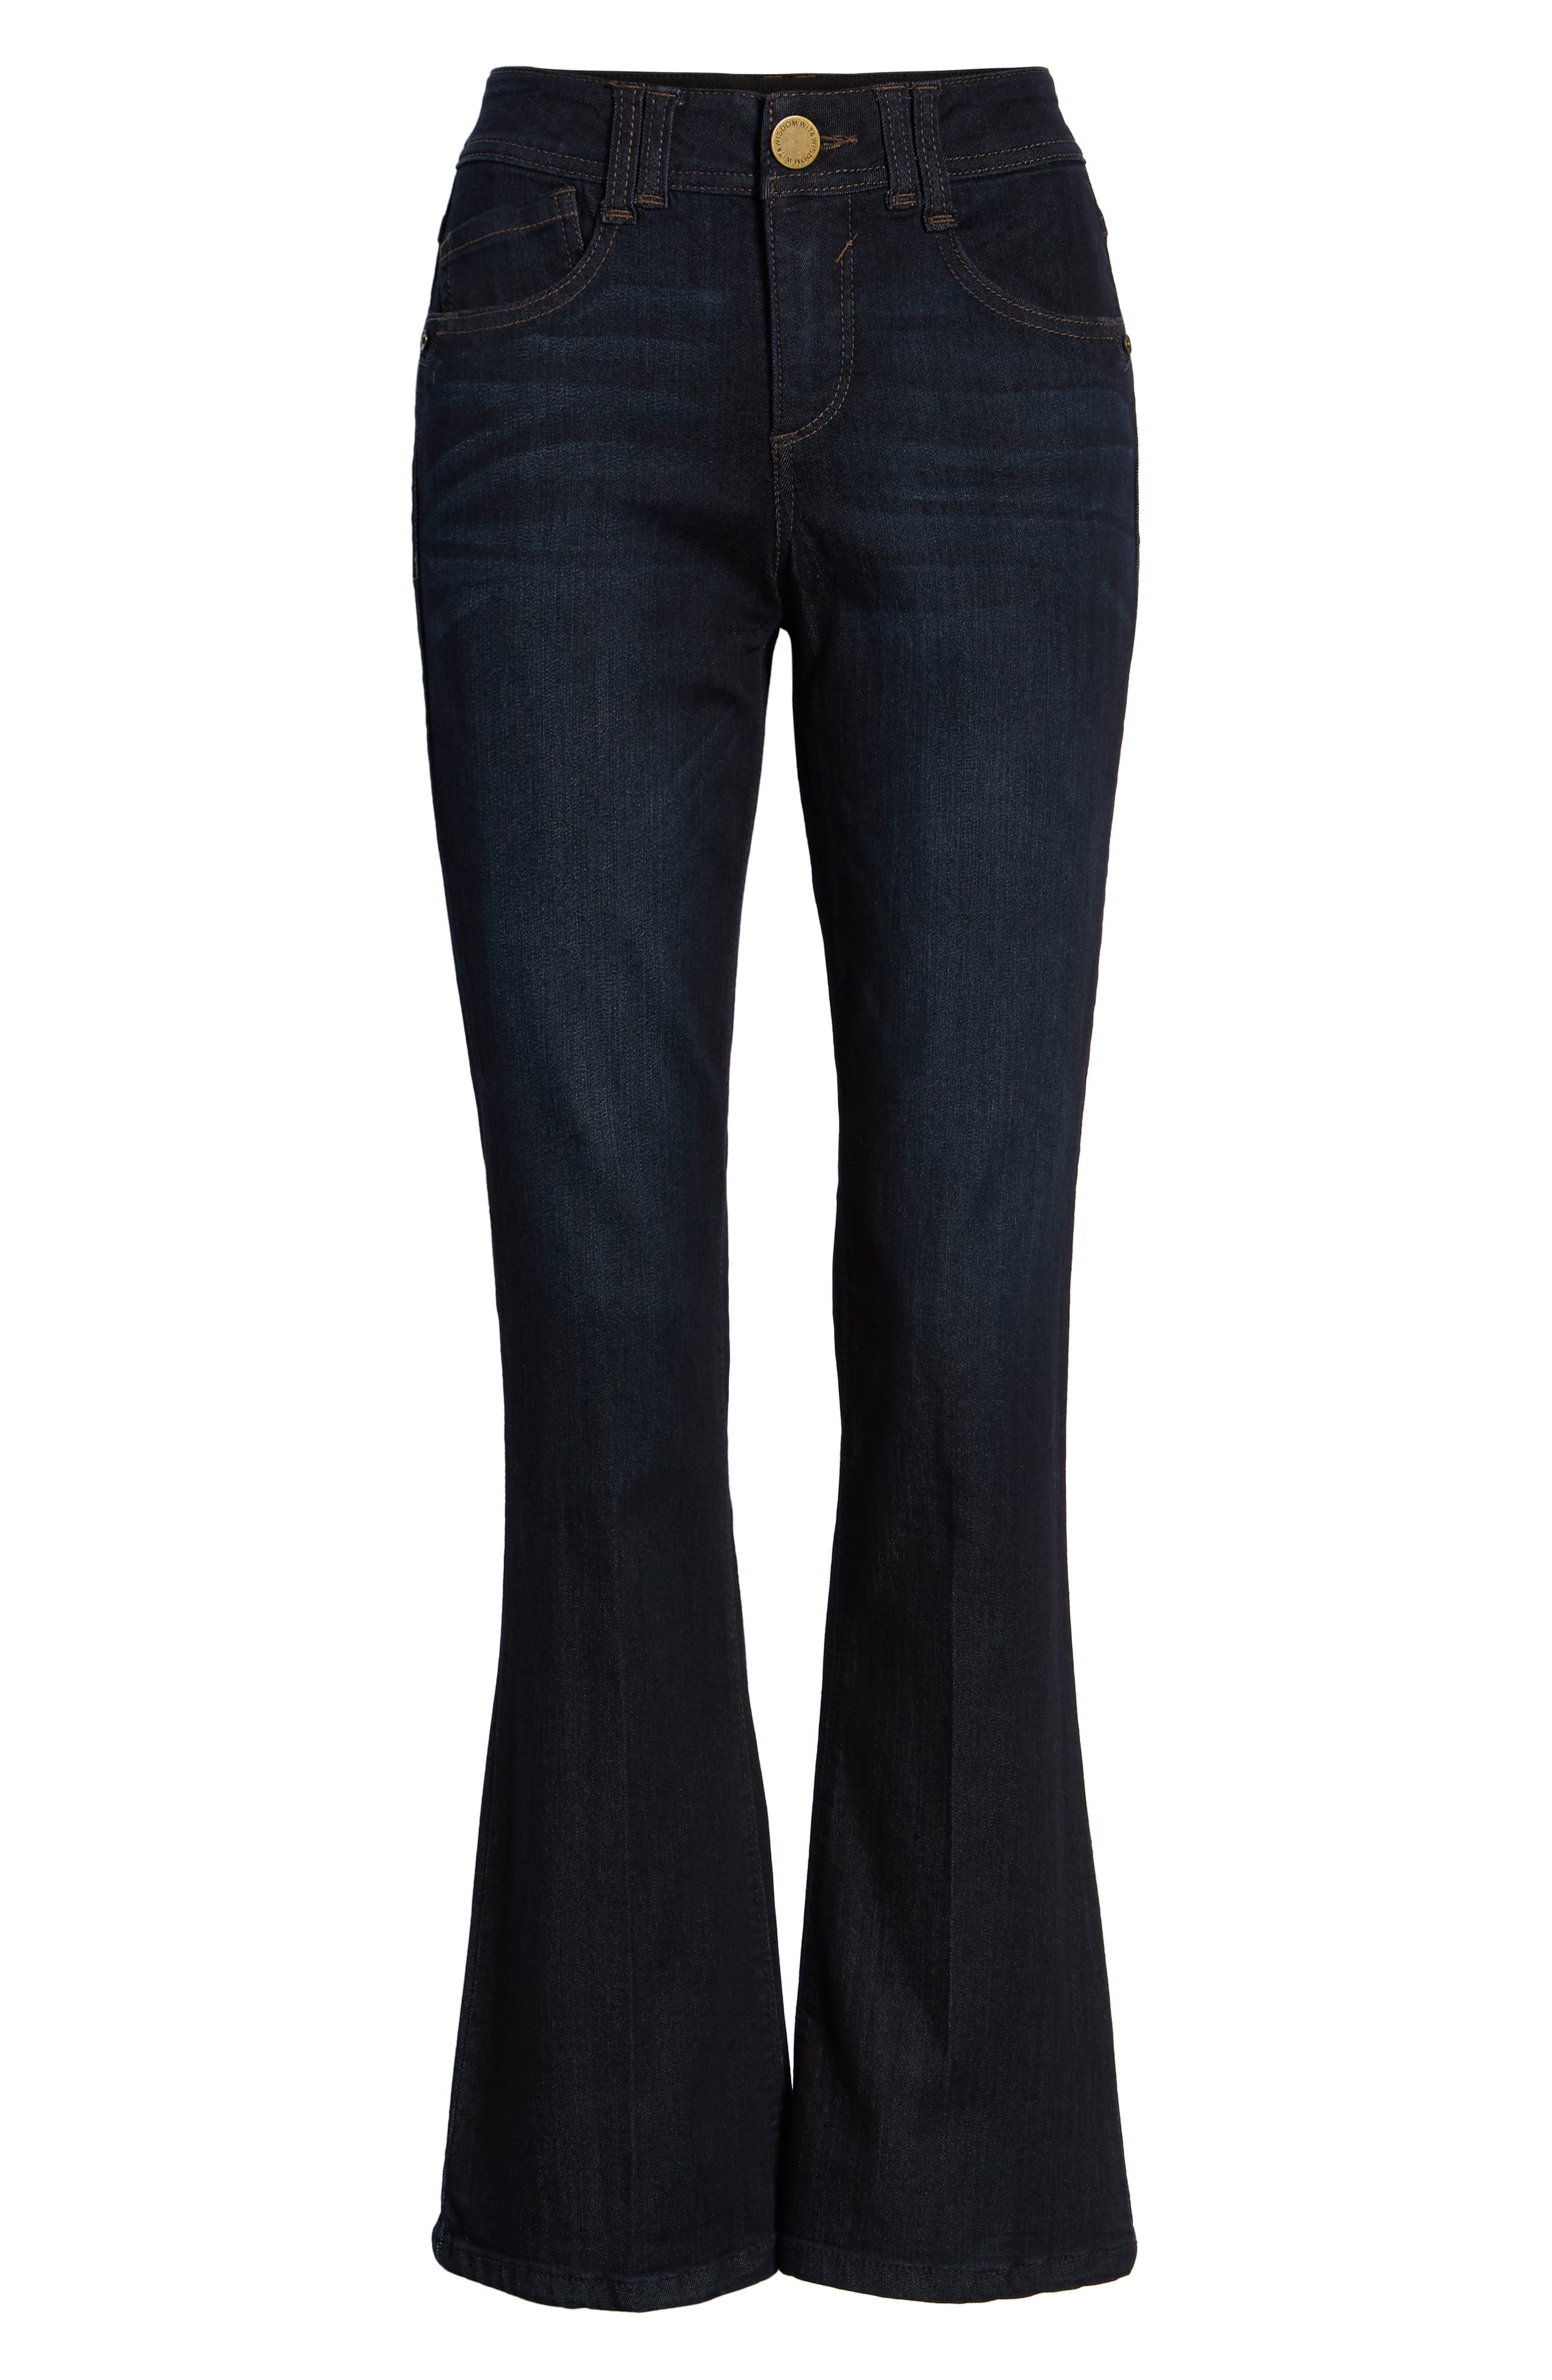 Ab-solution Itty Bitty Bootcut Jeans,                             Alternate thumbnail 7, color,                             INDIGO